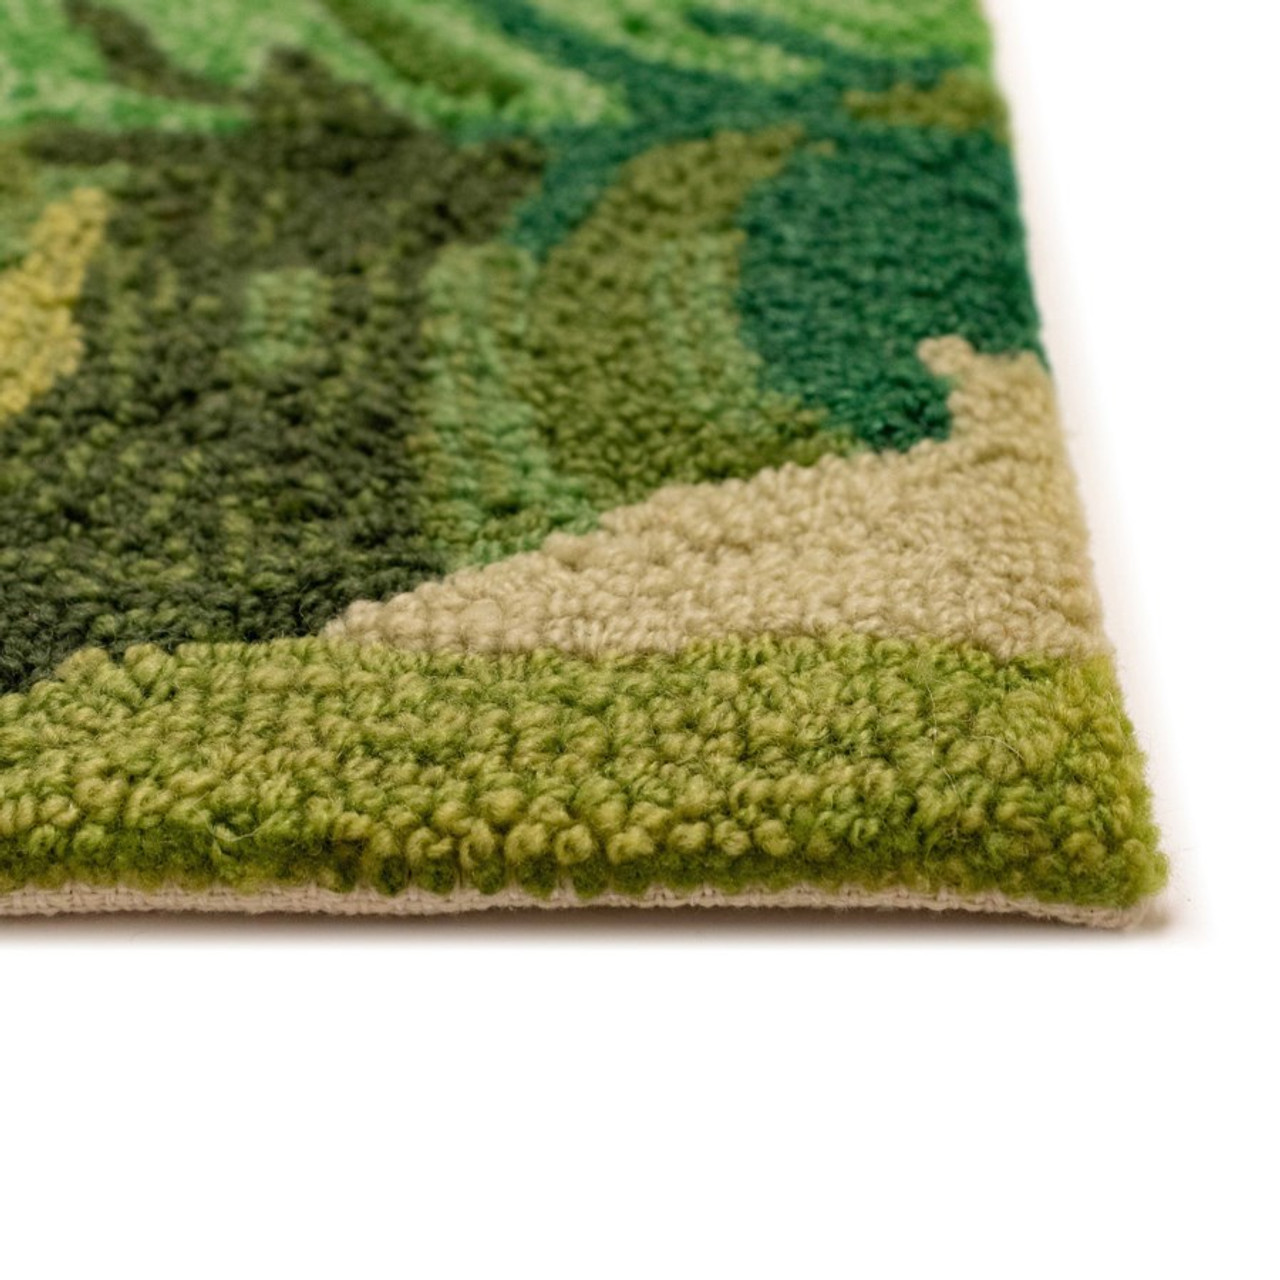 Green Capri Palm Leaf Indoor/Outdoor Rug - Hand Tufted